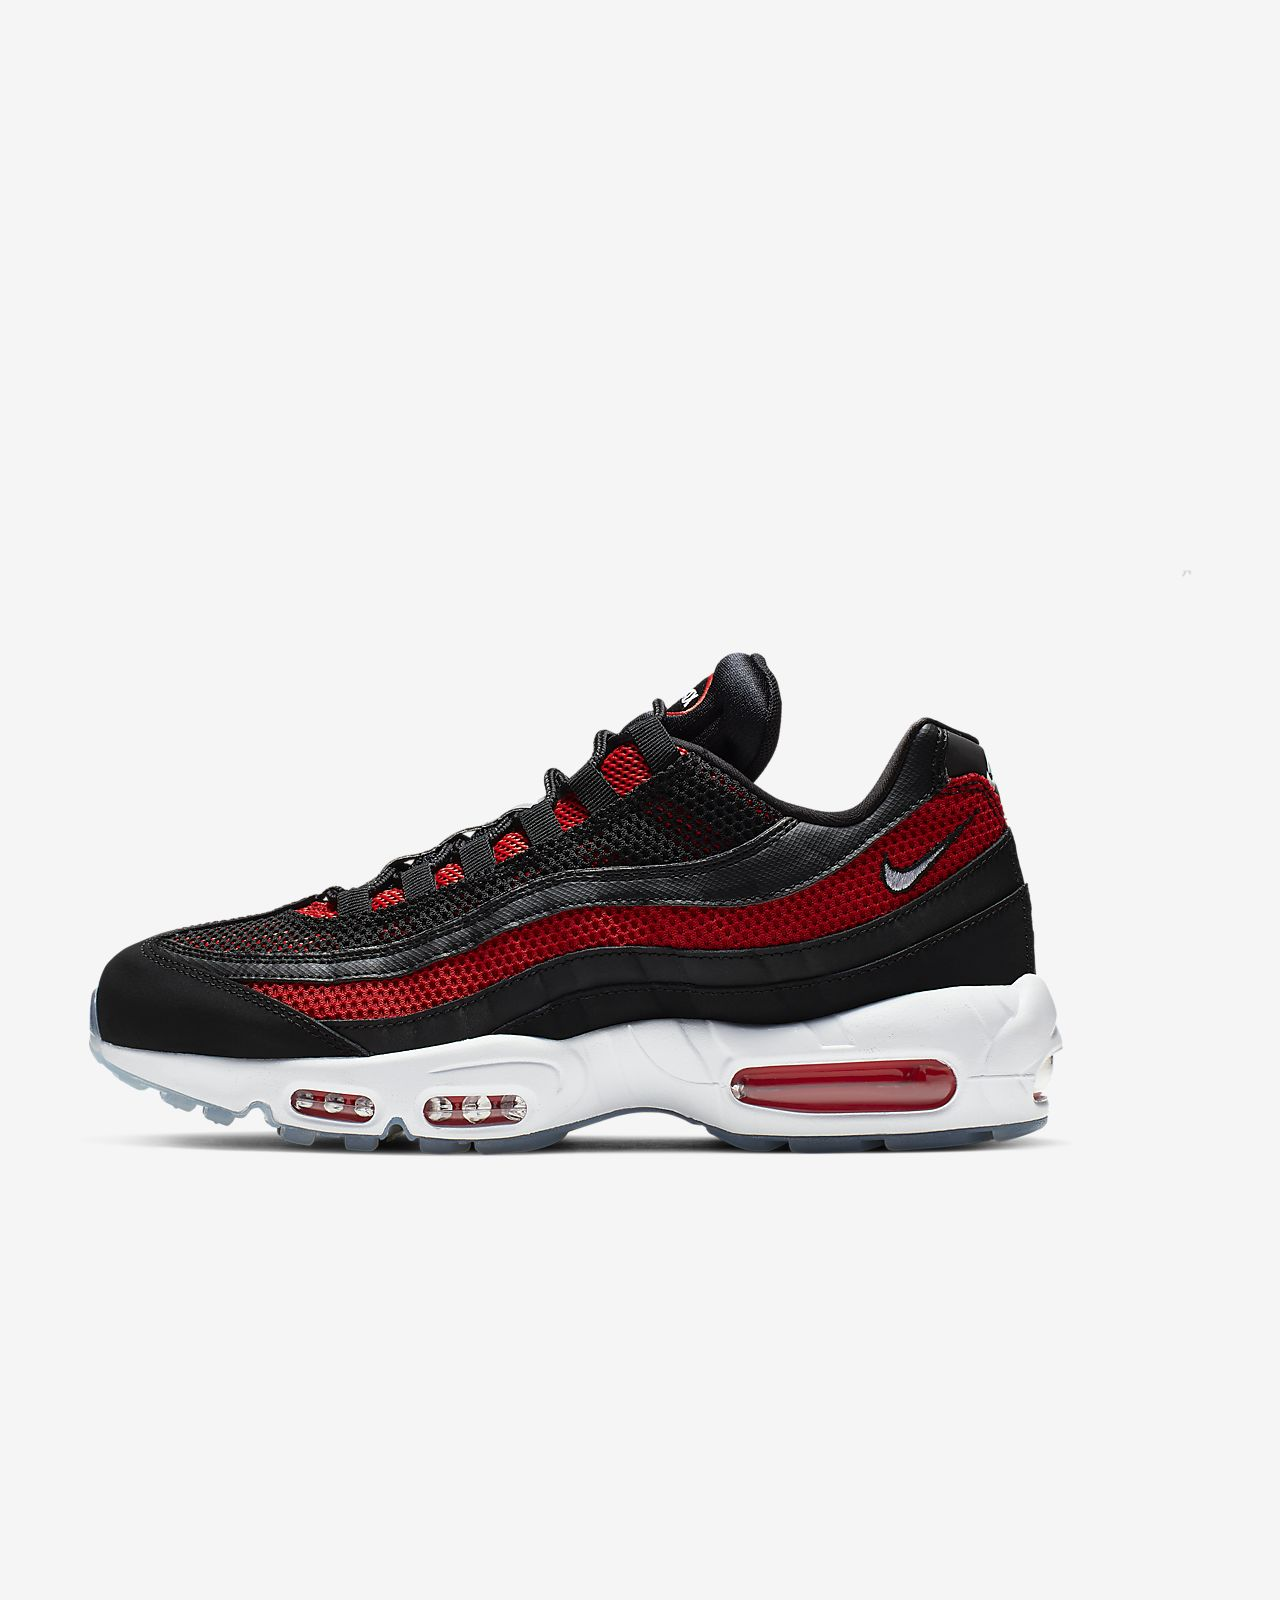 innovative design 4c040 0ee44 Men s Shoe. Nike Air Max 95 Essential